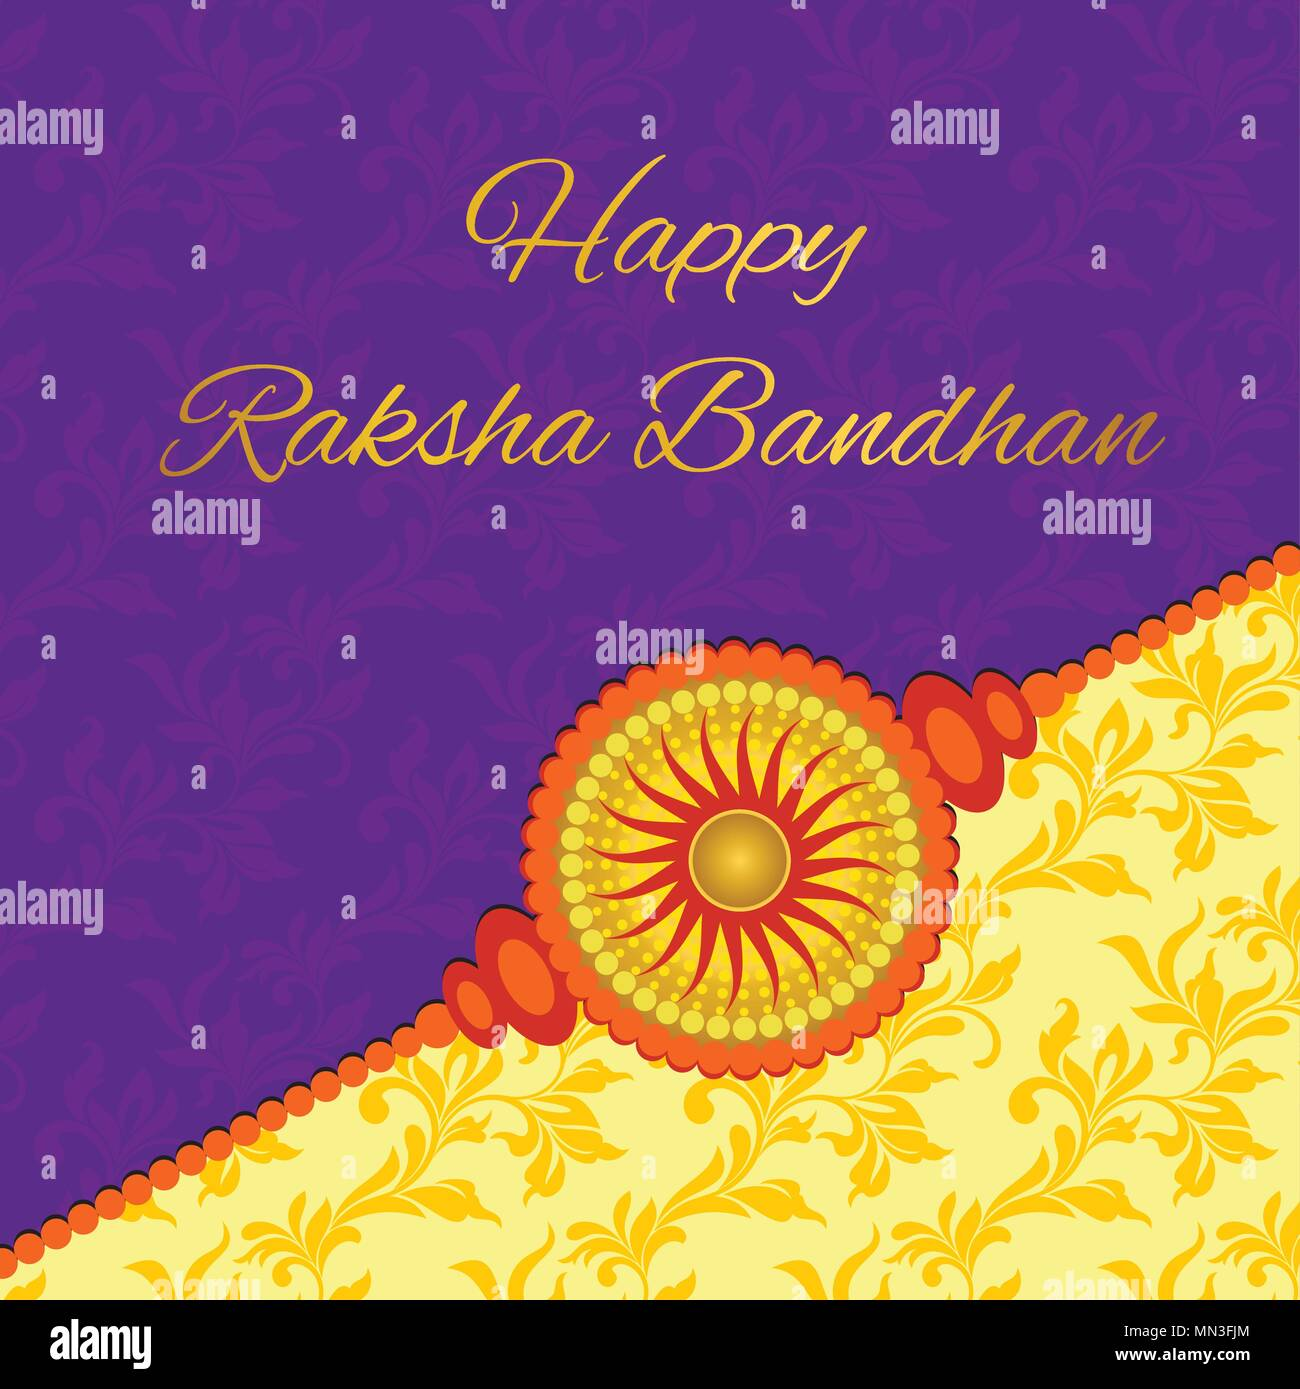 Happy raksha bandhan elegant greeting card with beautiful rakhi for happy raksha bandhan elegant greeting card with beautiful rakhi for indian festival of brother and sister love celebration decorated purple and yel m4hsunfo